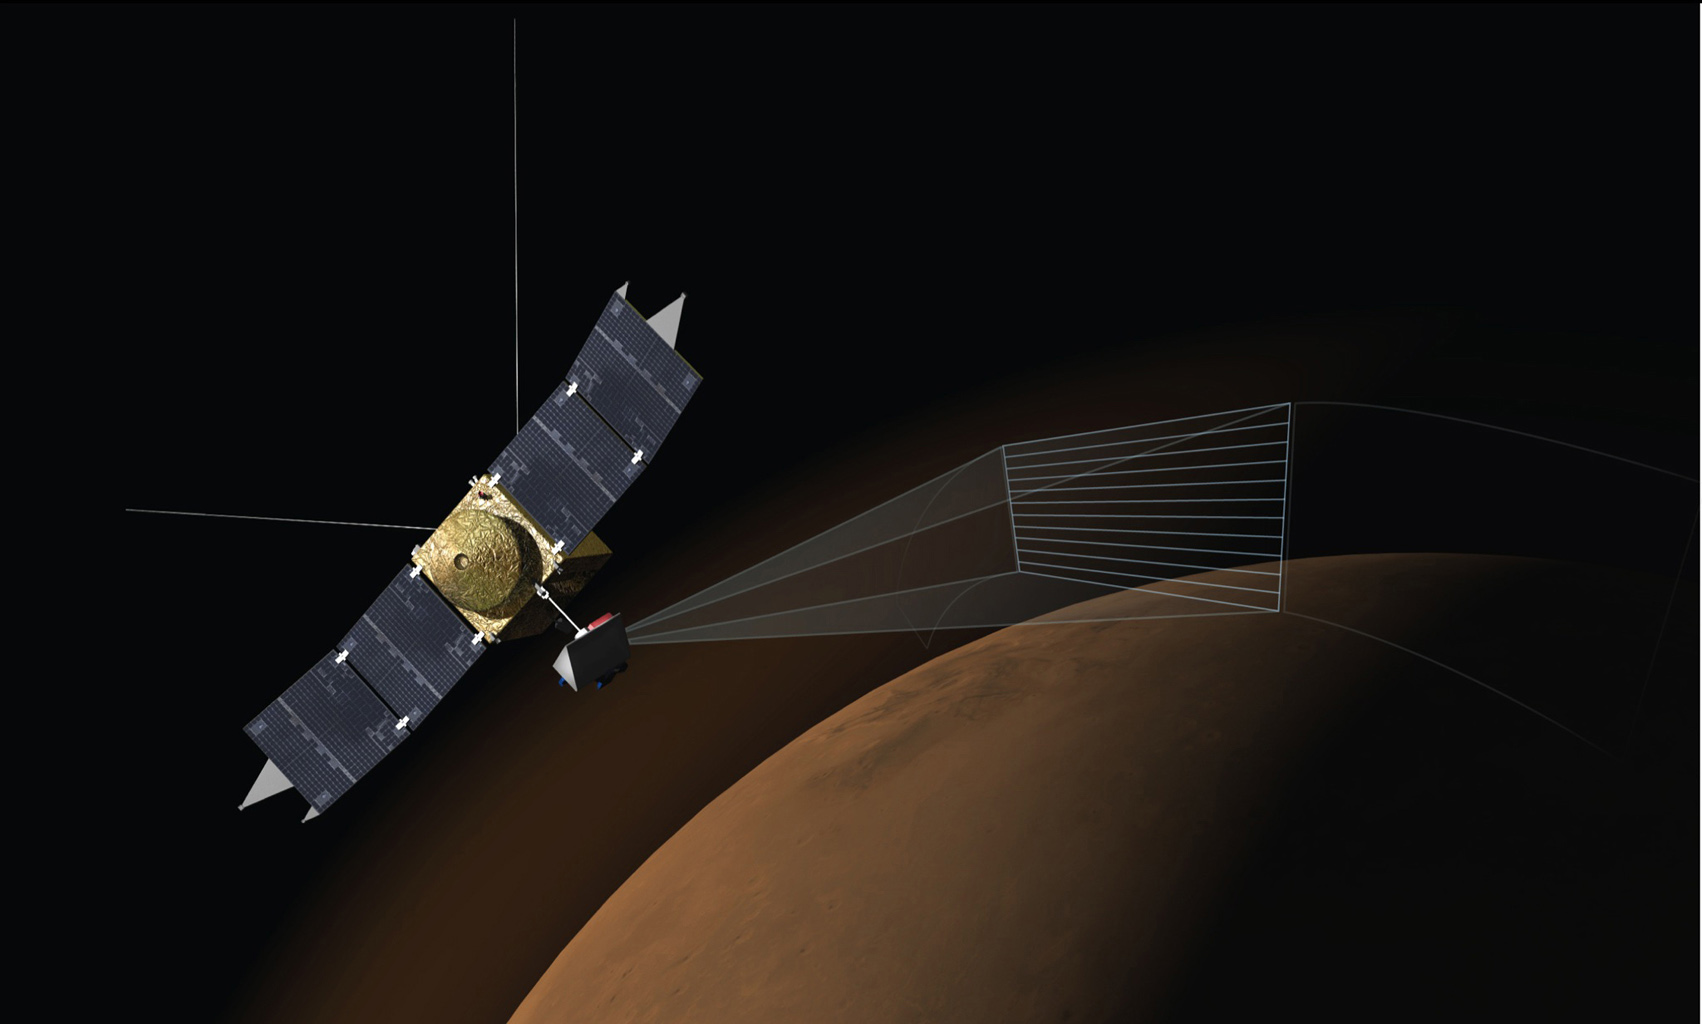 Space Images | Artist's Concept of MAVEN's Imaging ...